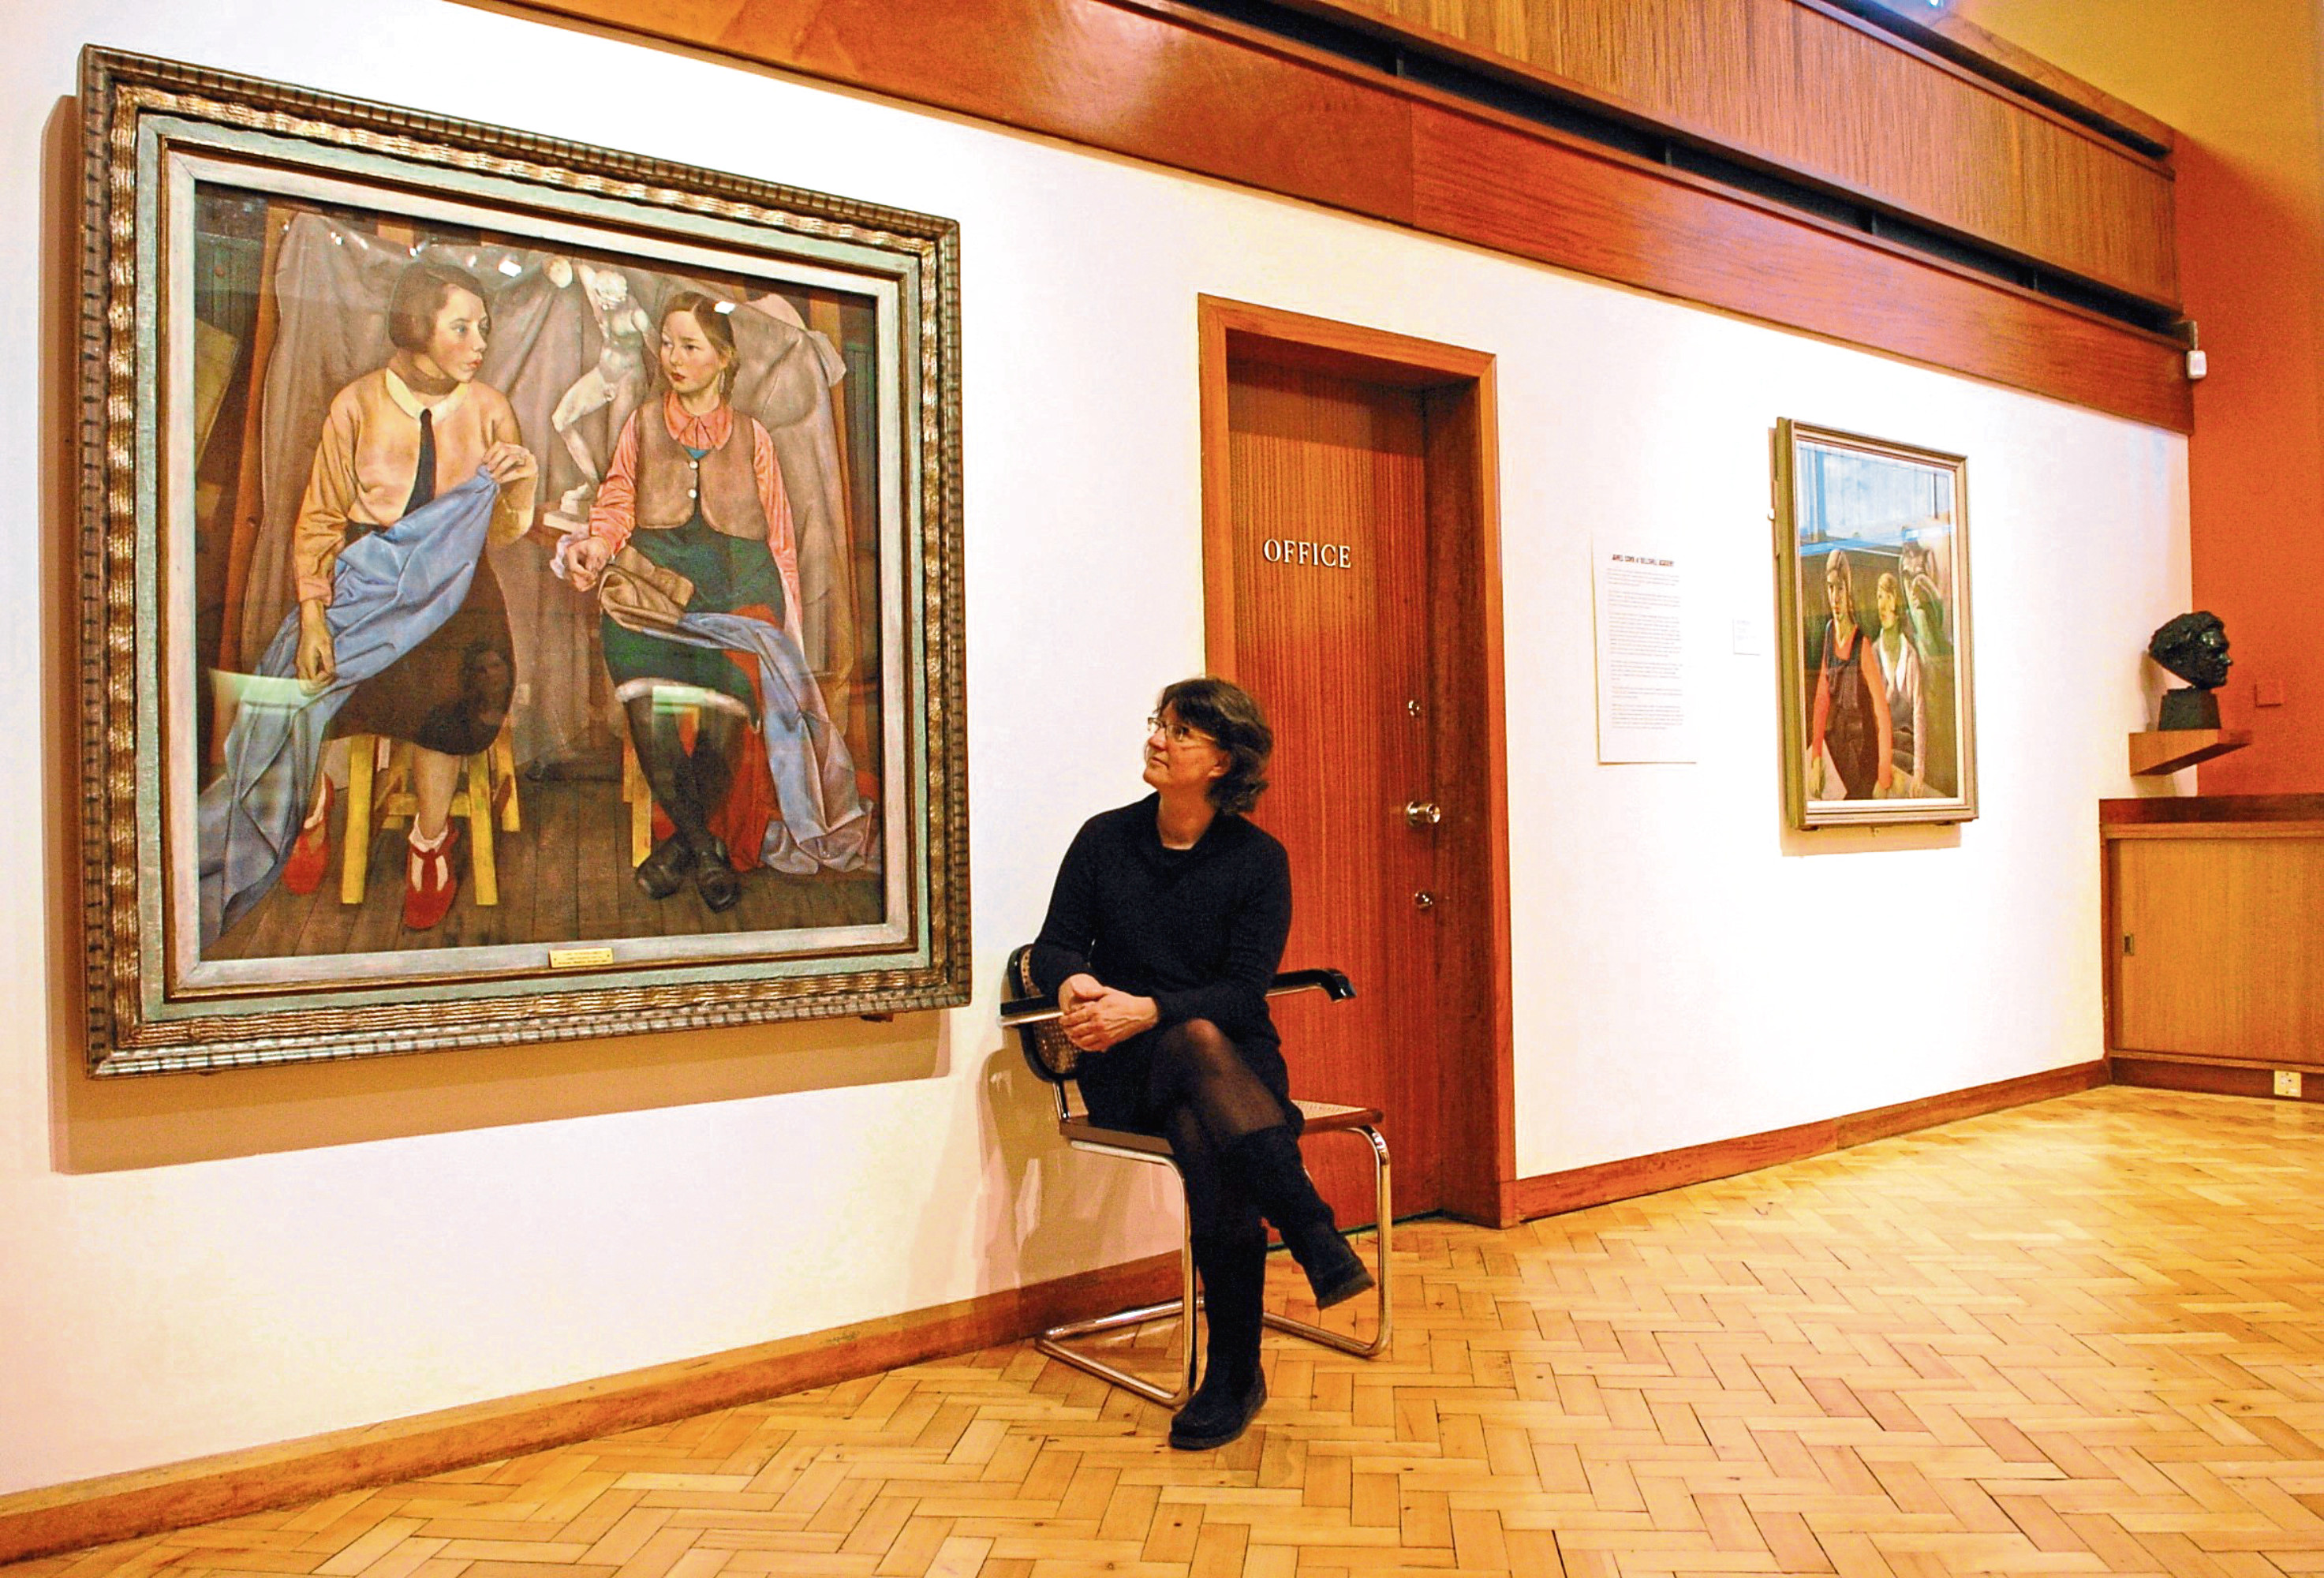 The More Museum in the Netherlands has asked Aberdeen City Council to borrow the Two Schoolgirls painting by James Cowie.